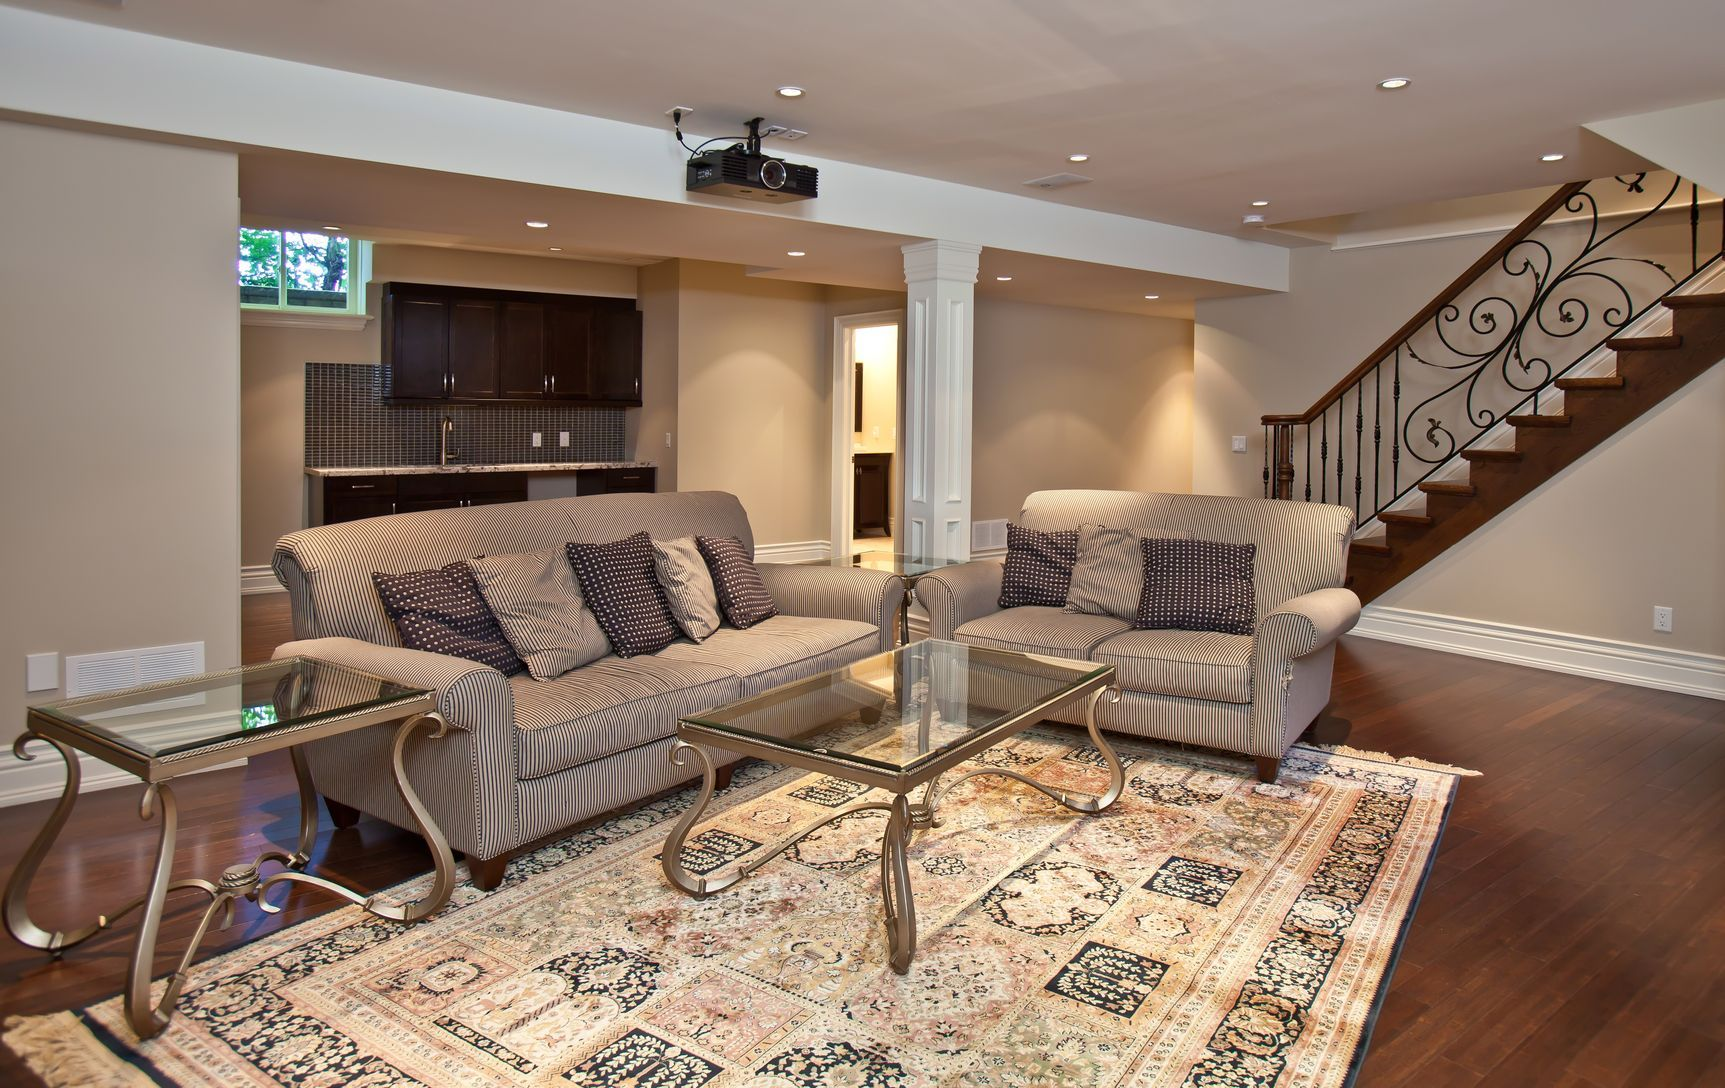 Best Of Basement and attic